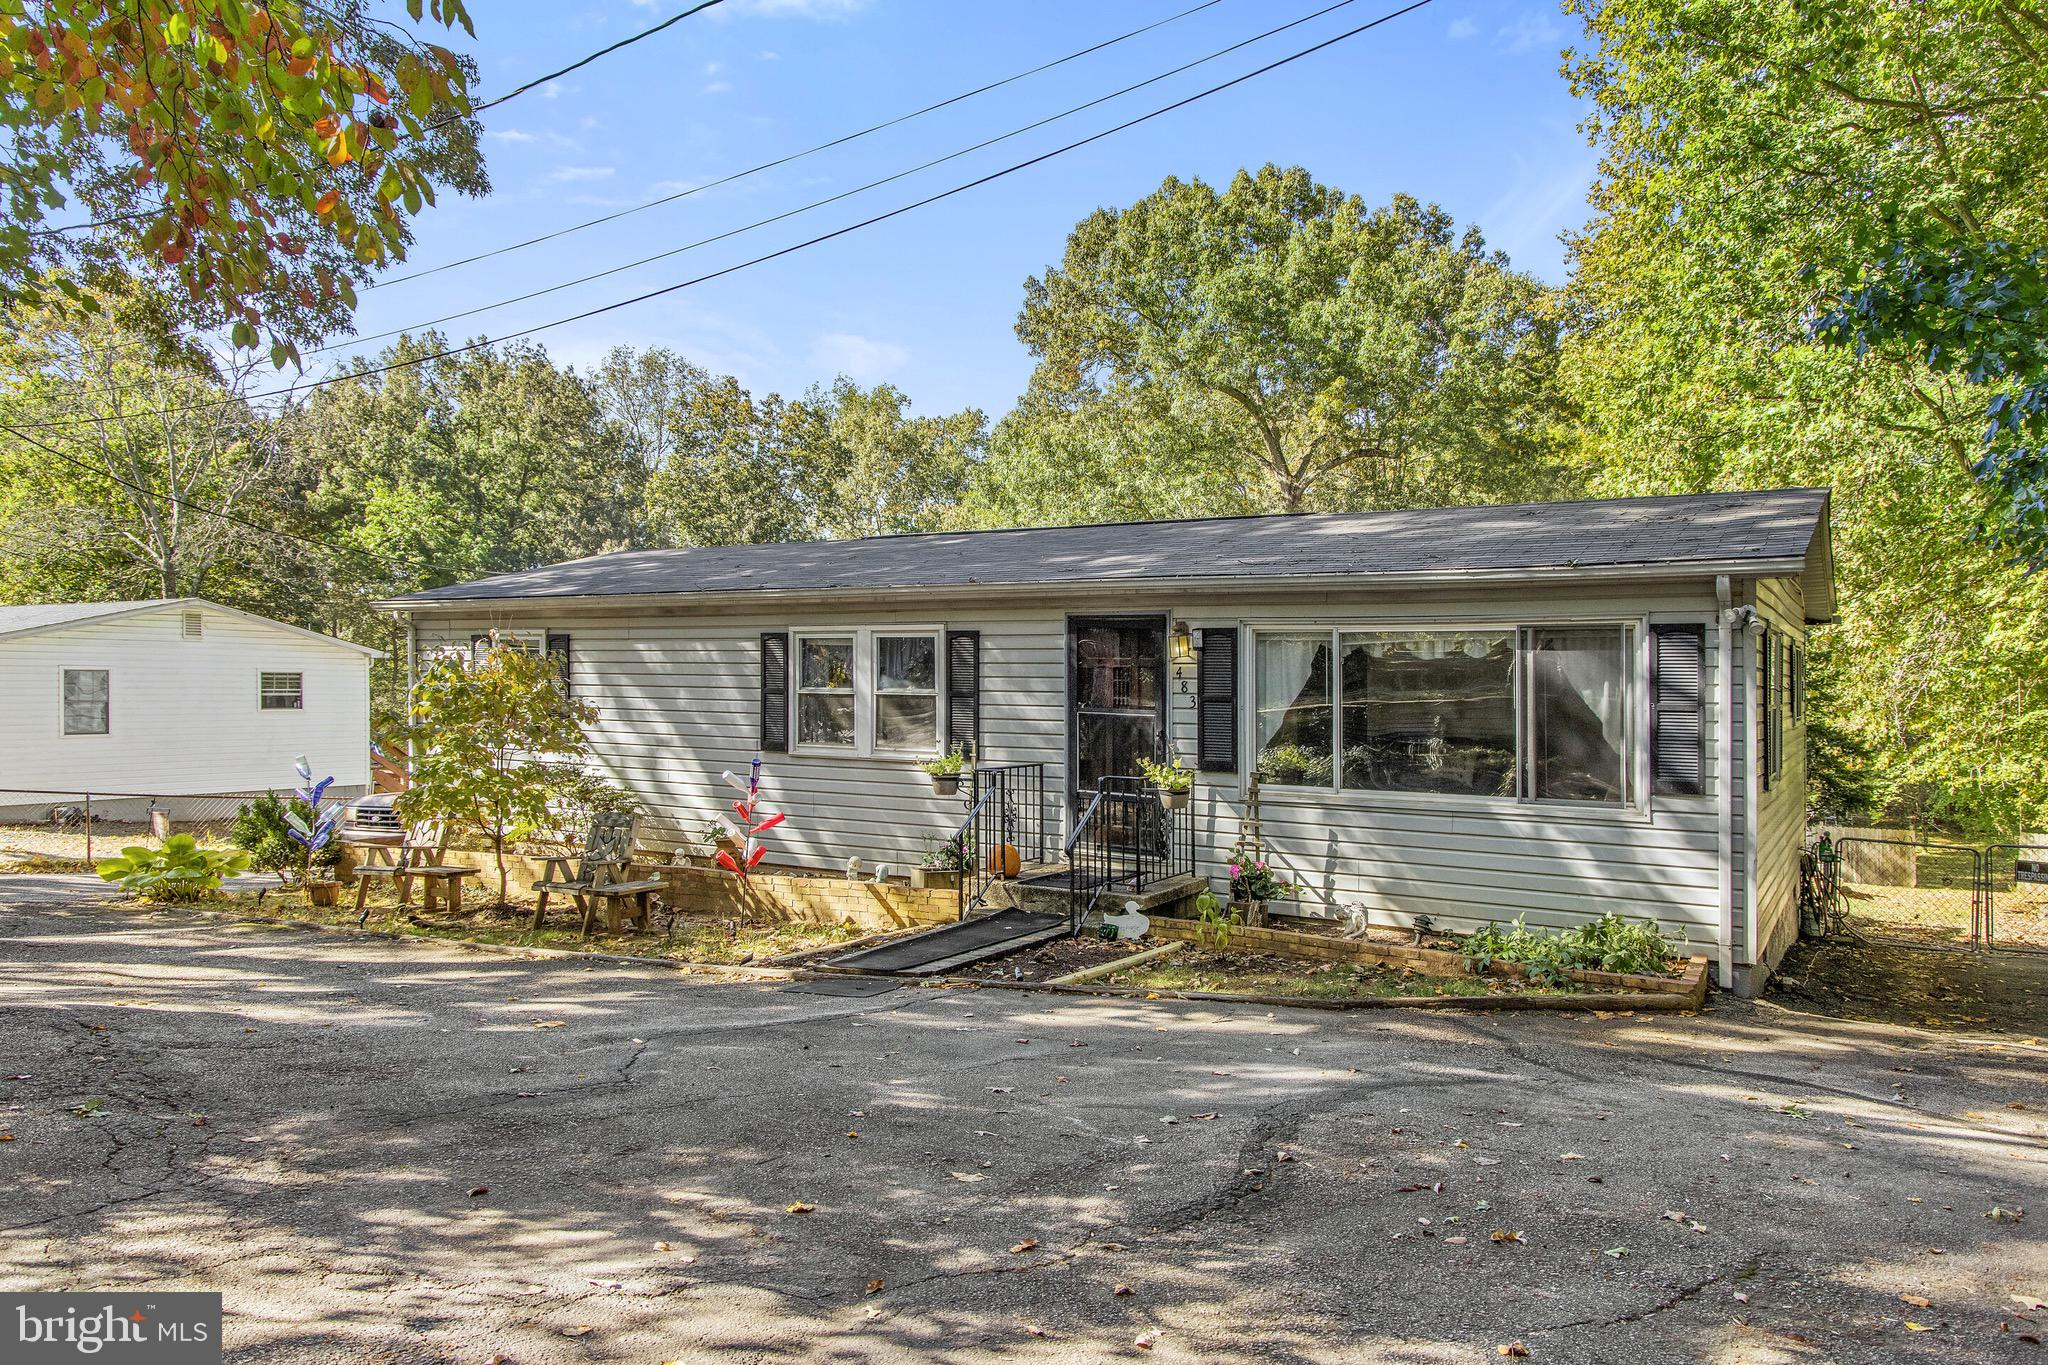 Welcome to this amazing, well kept rancher! An open kitchen and dining area give you all the space a